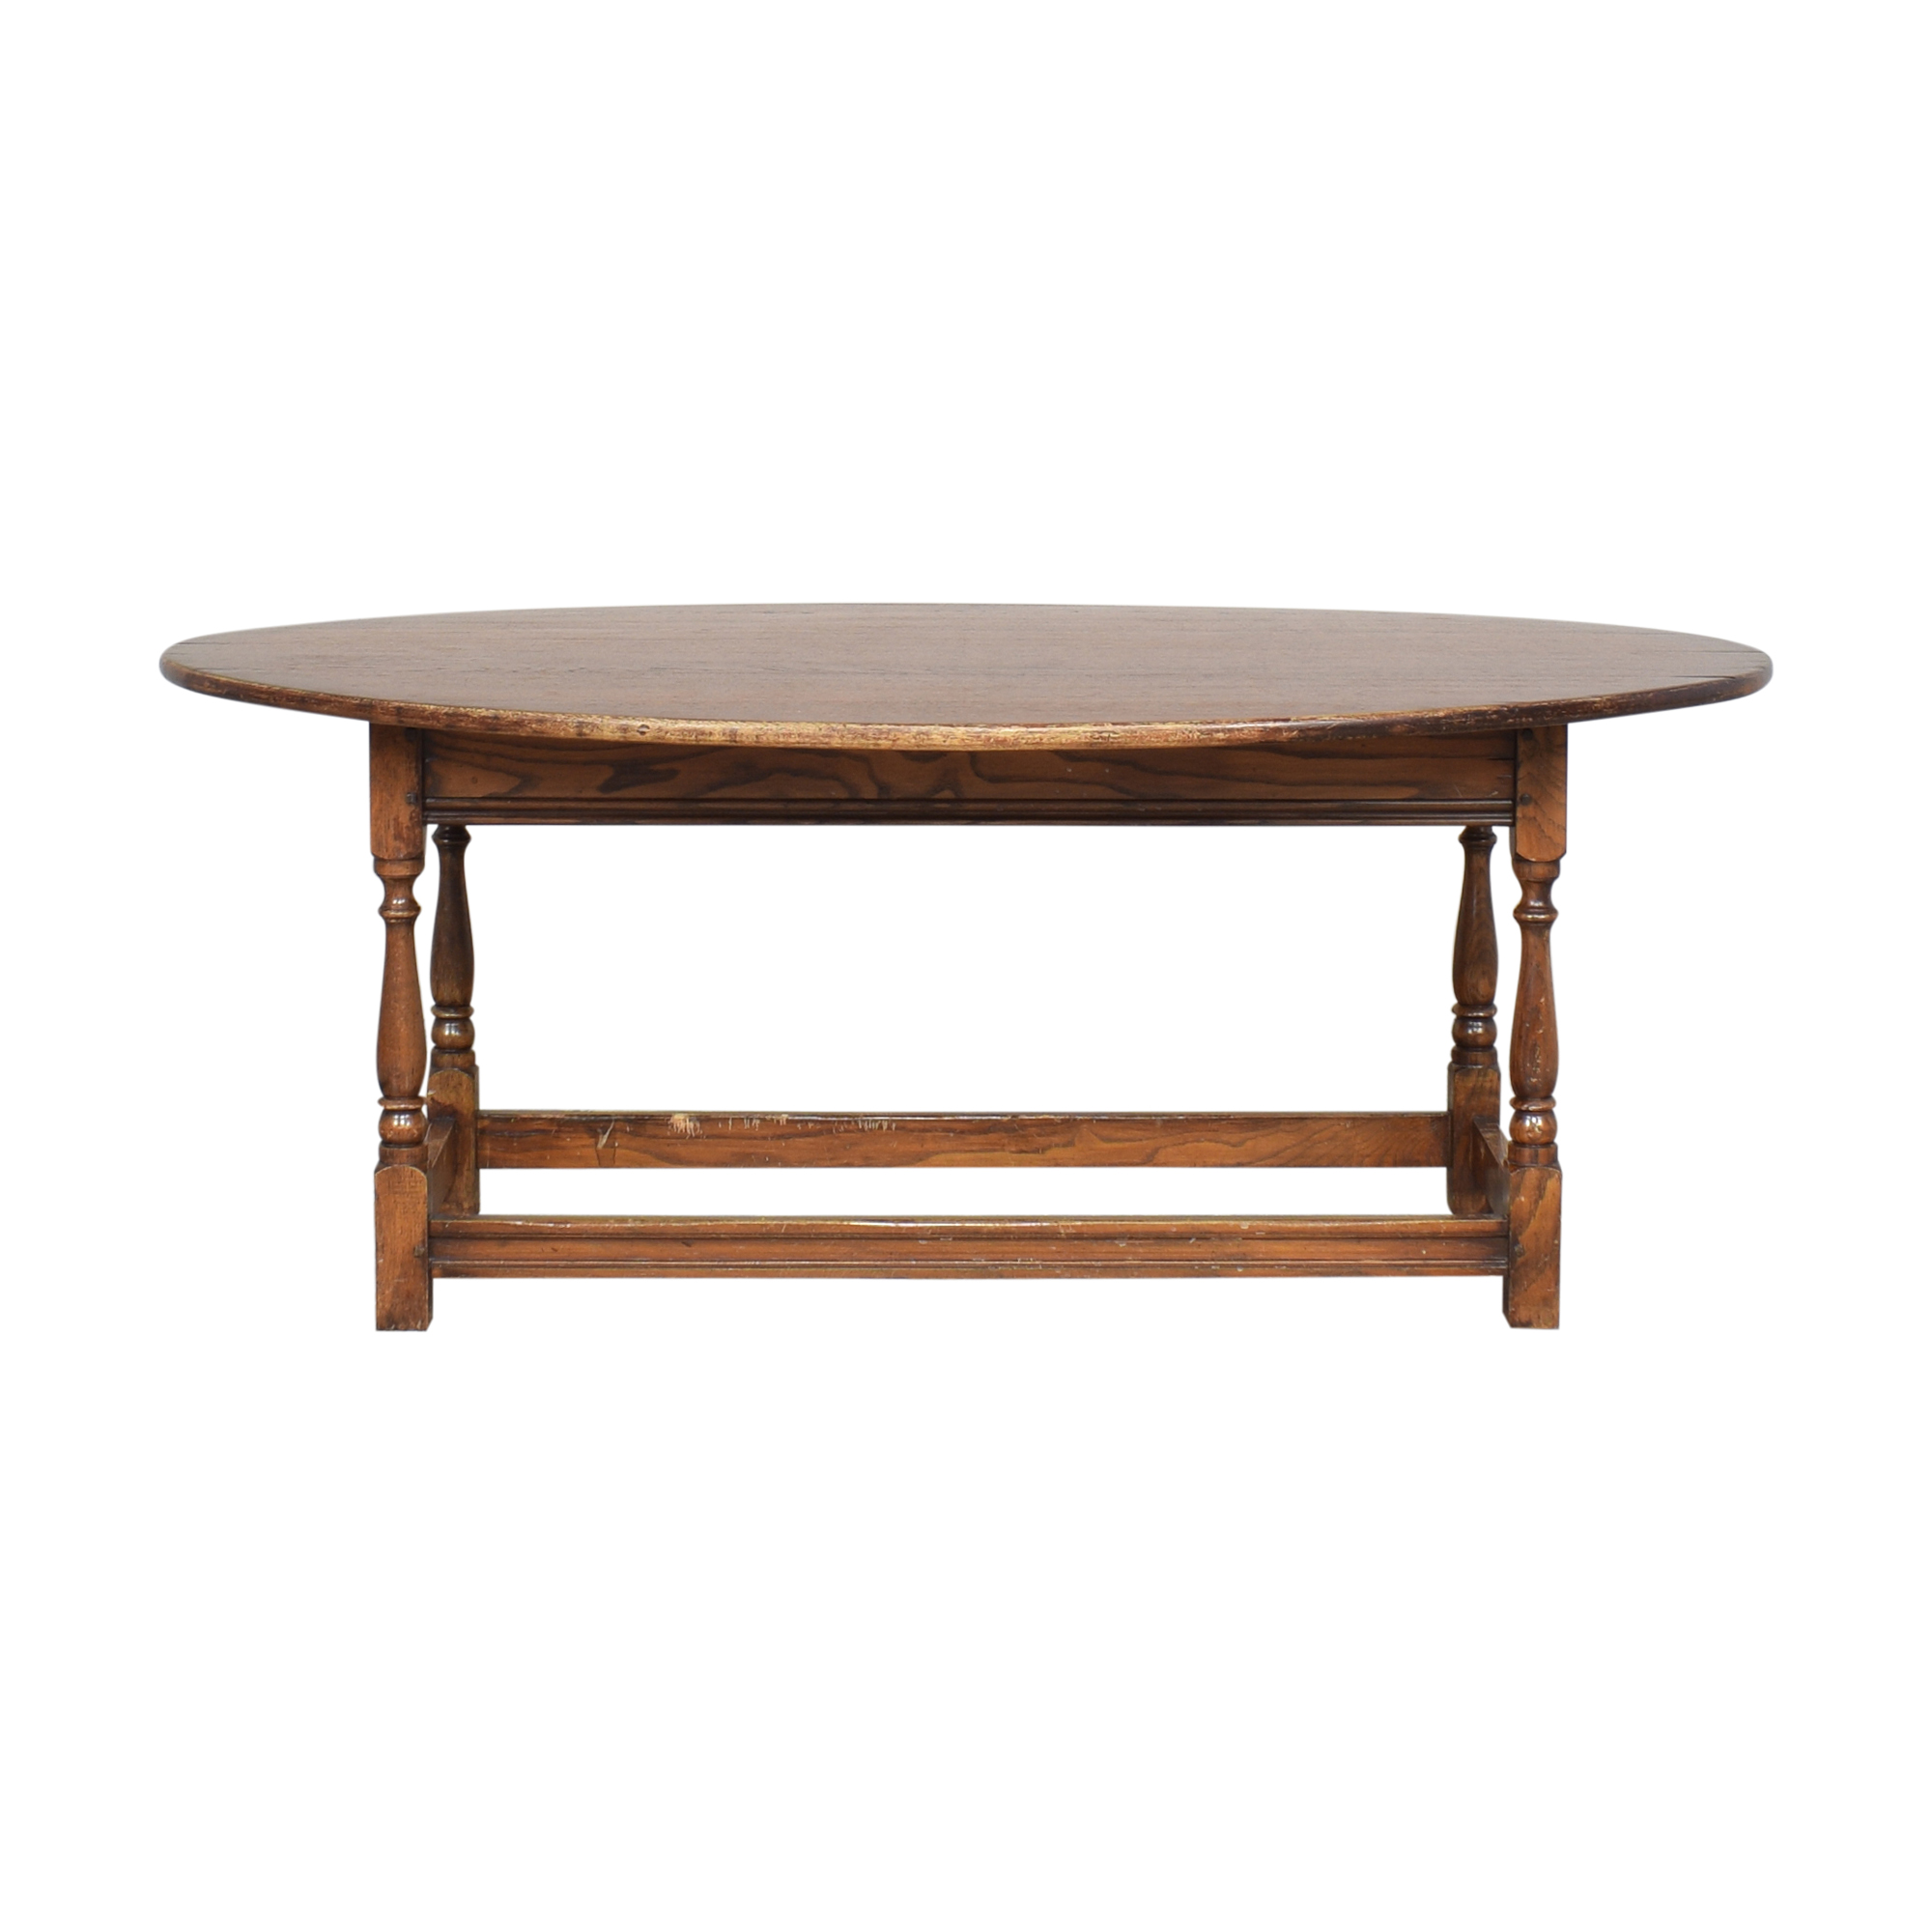 Oval Coffee Table / Coffee Tables